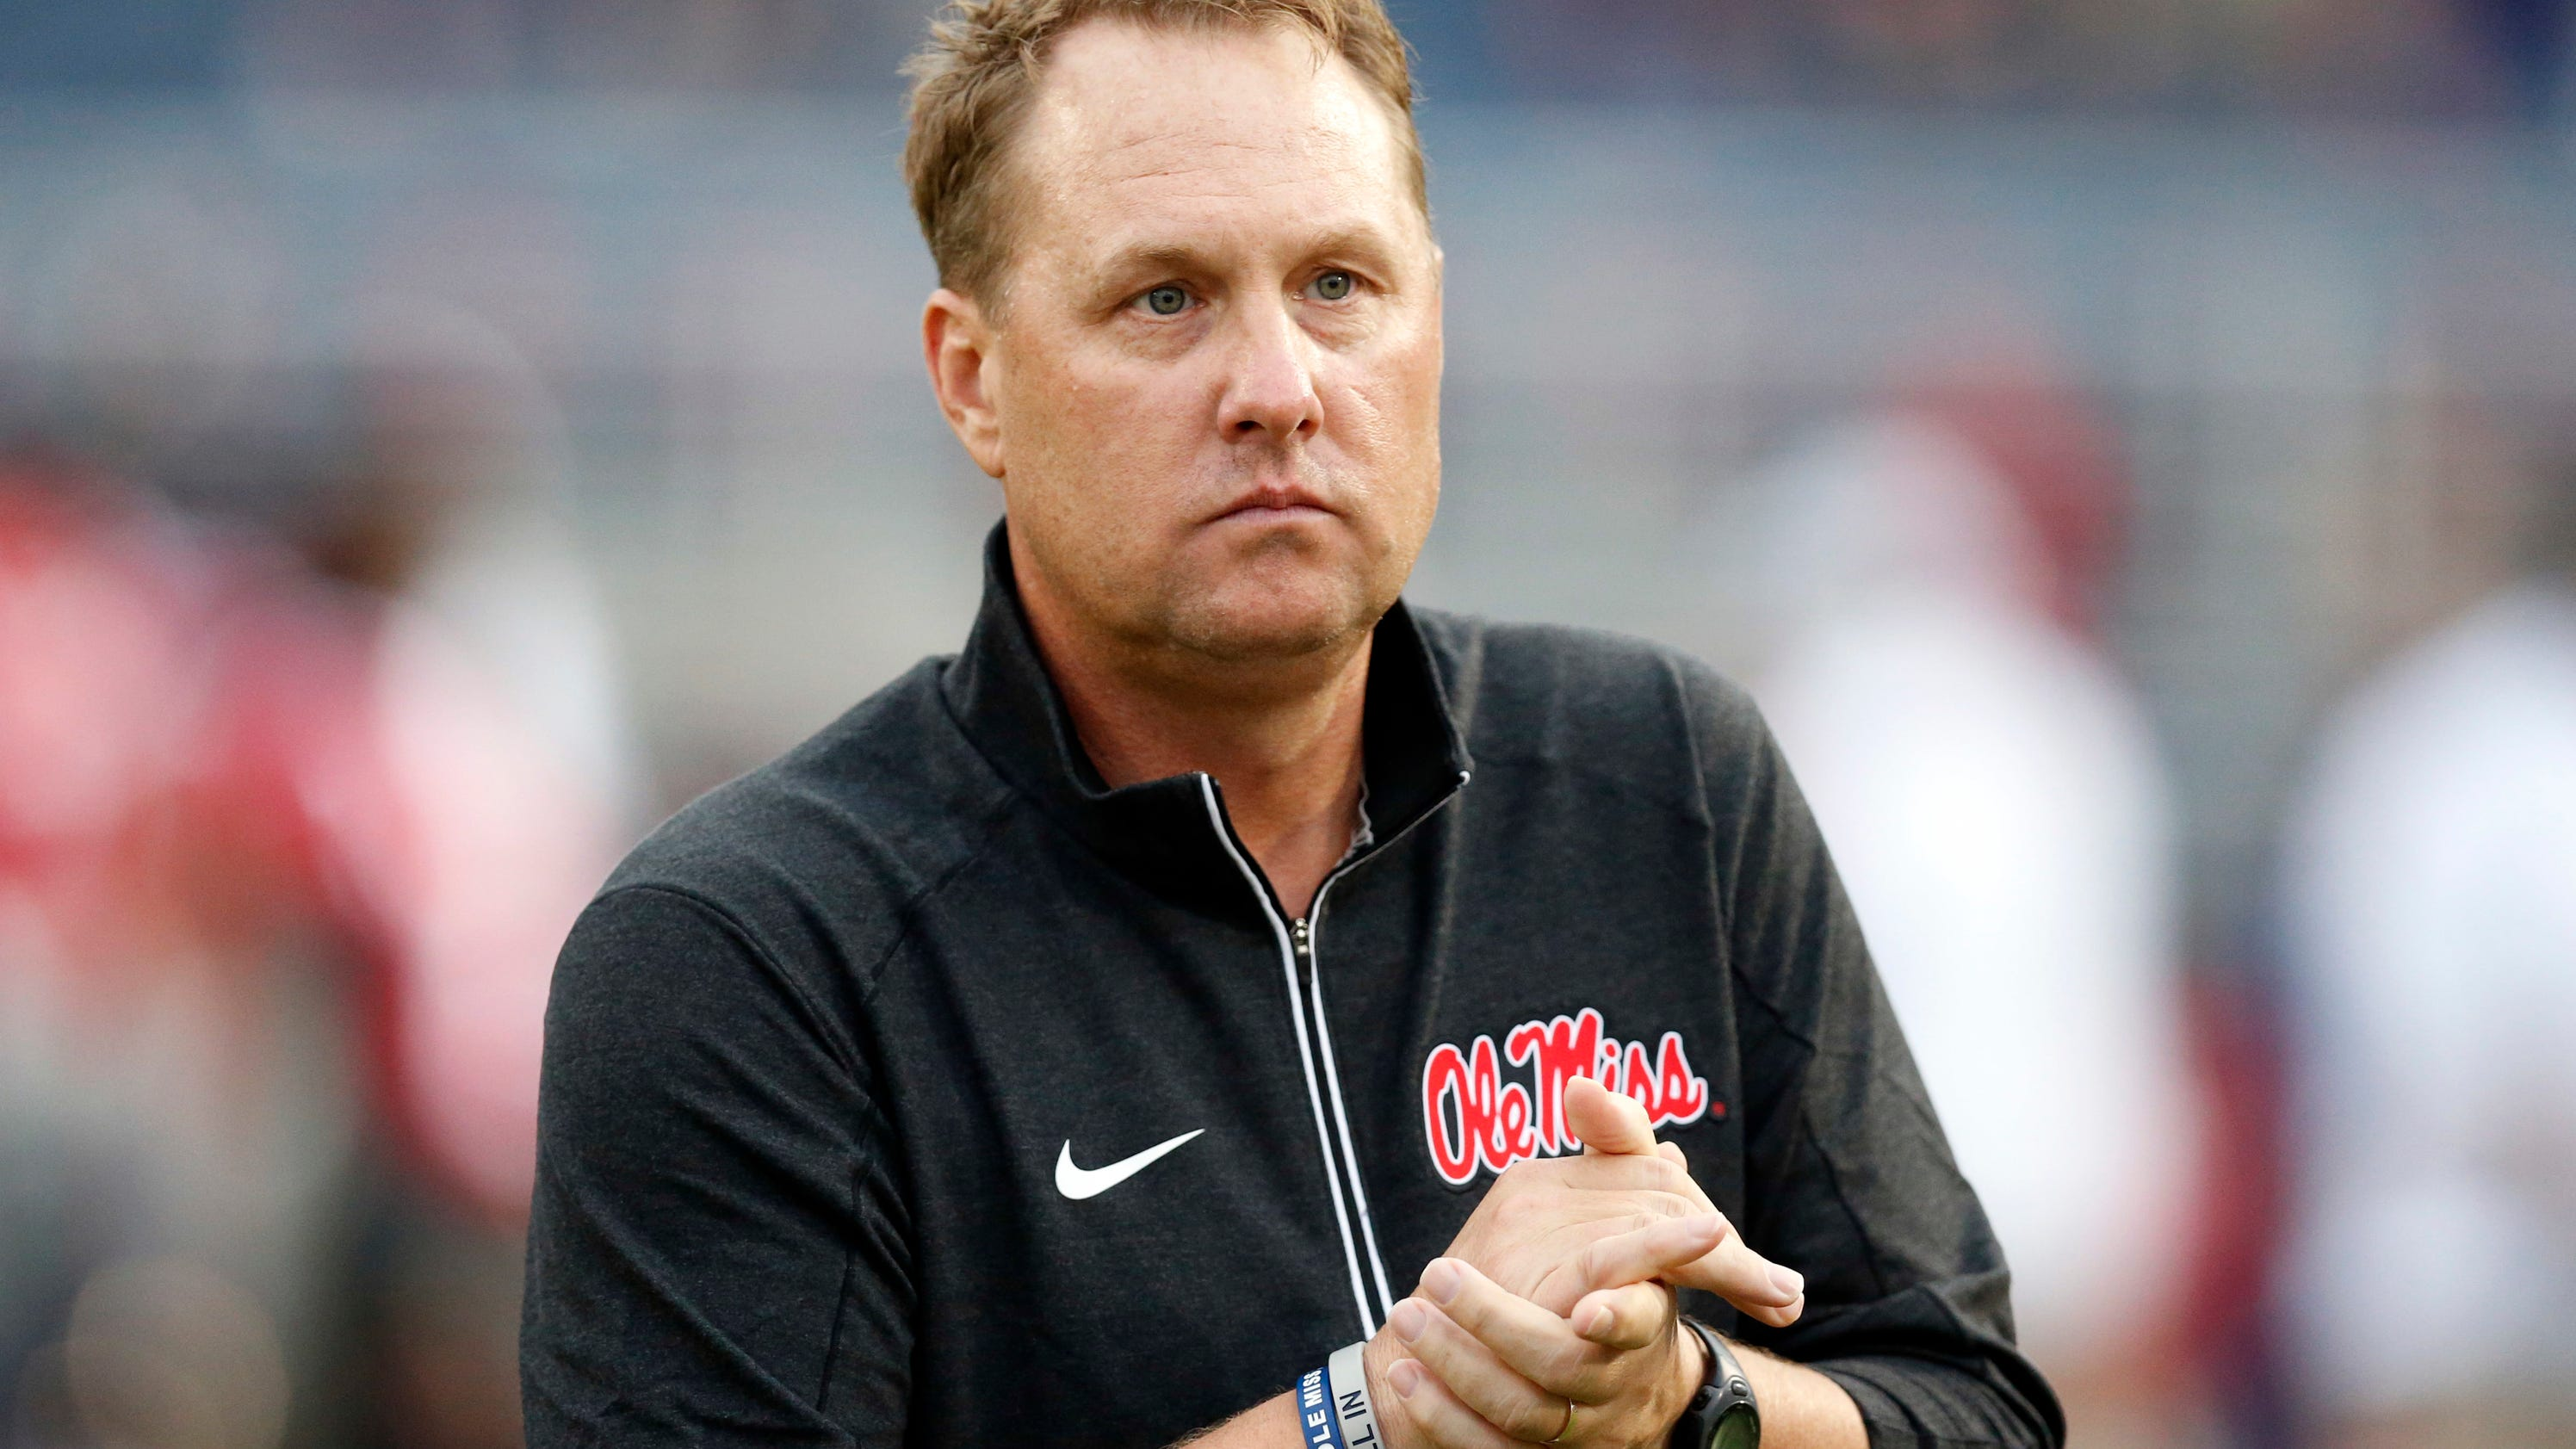 Phone records: Hugh Freeze had hundreds of phone calls with Mississippi booster in NCAA case